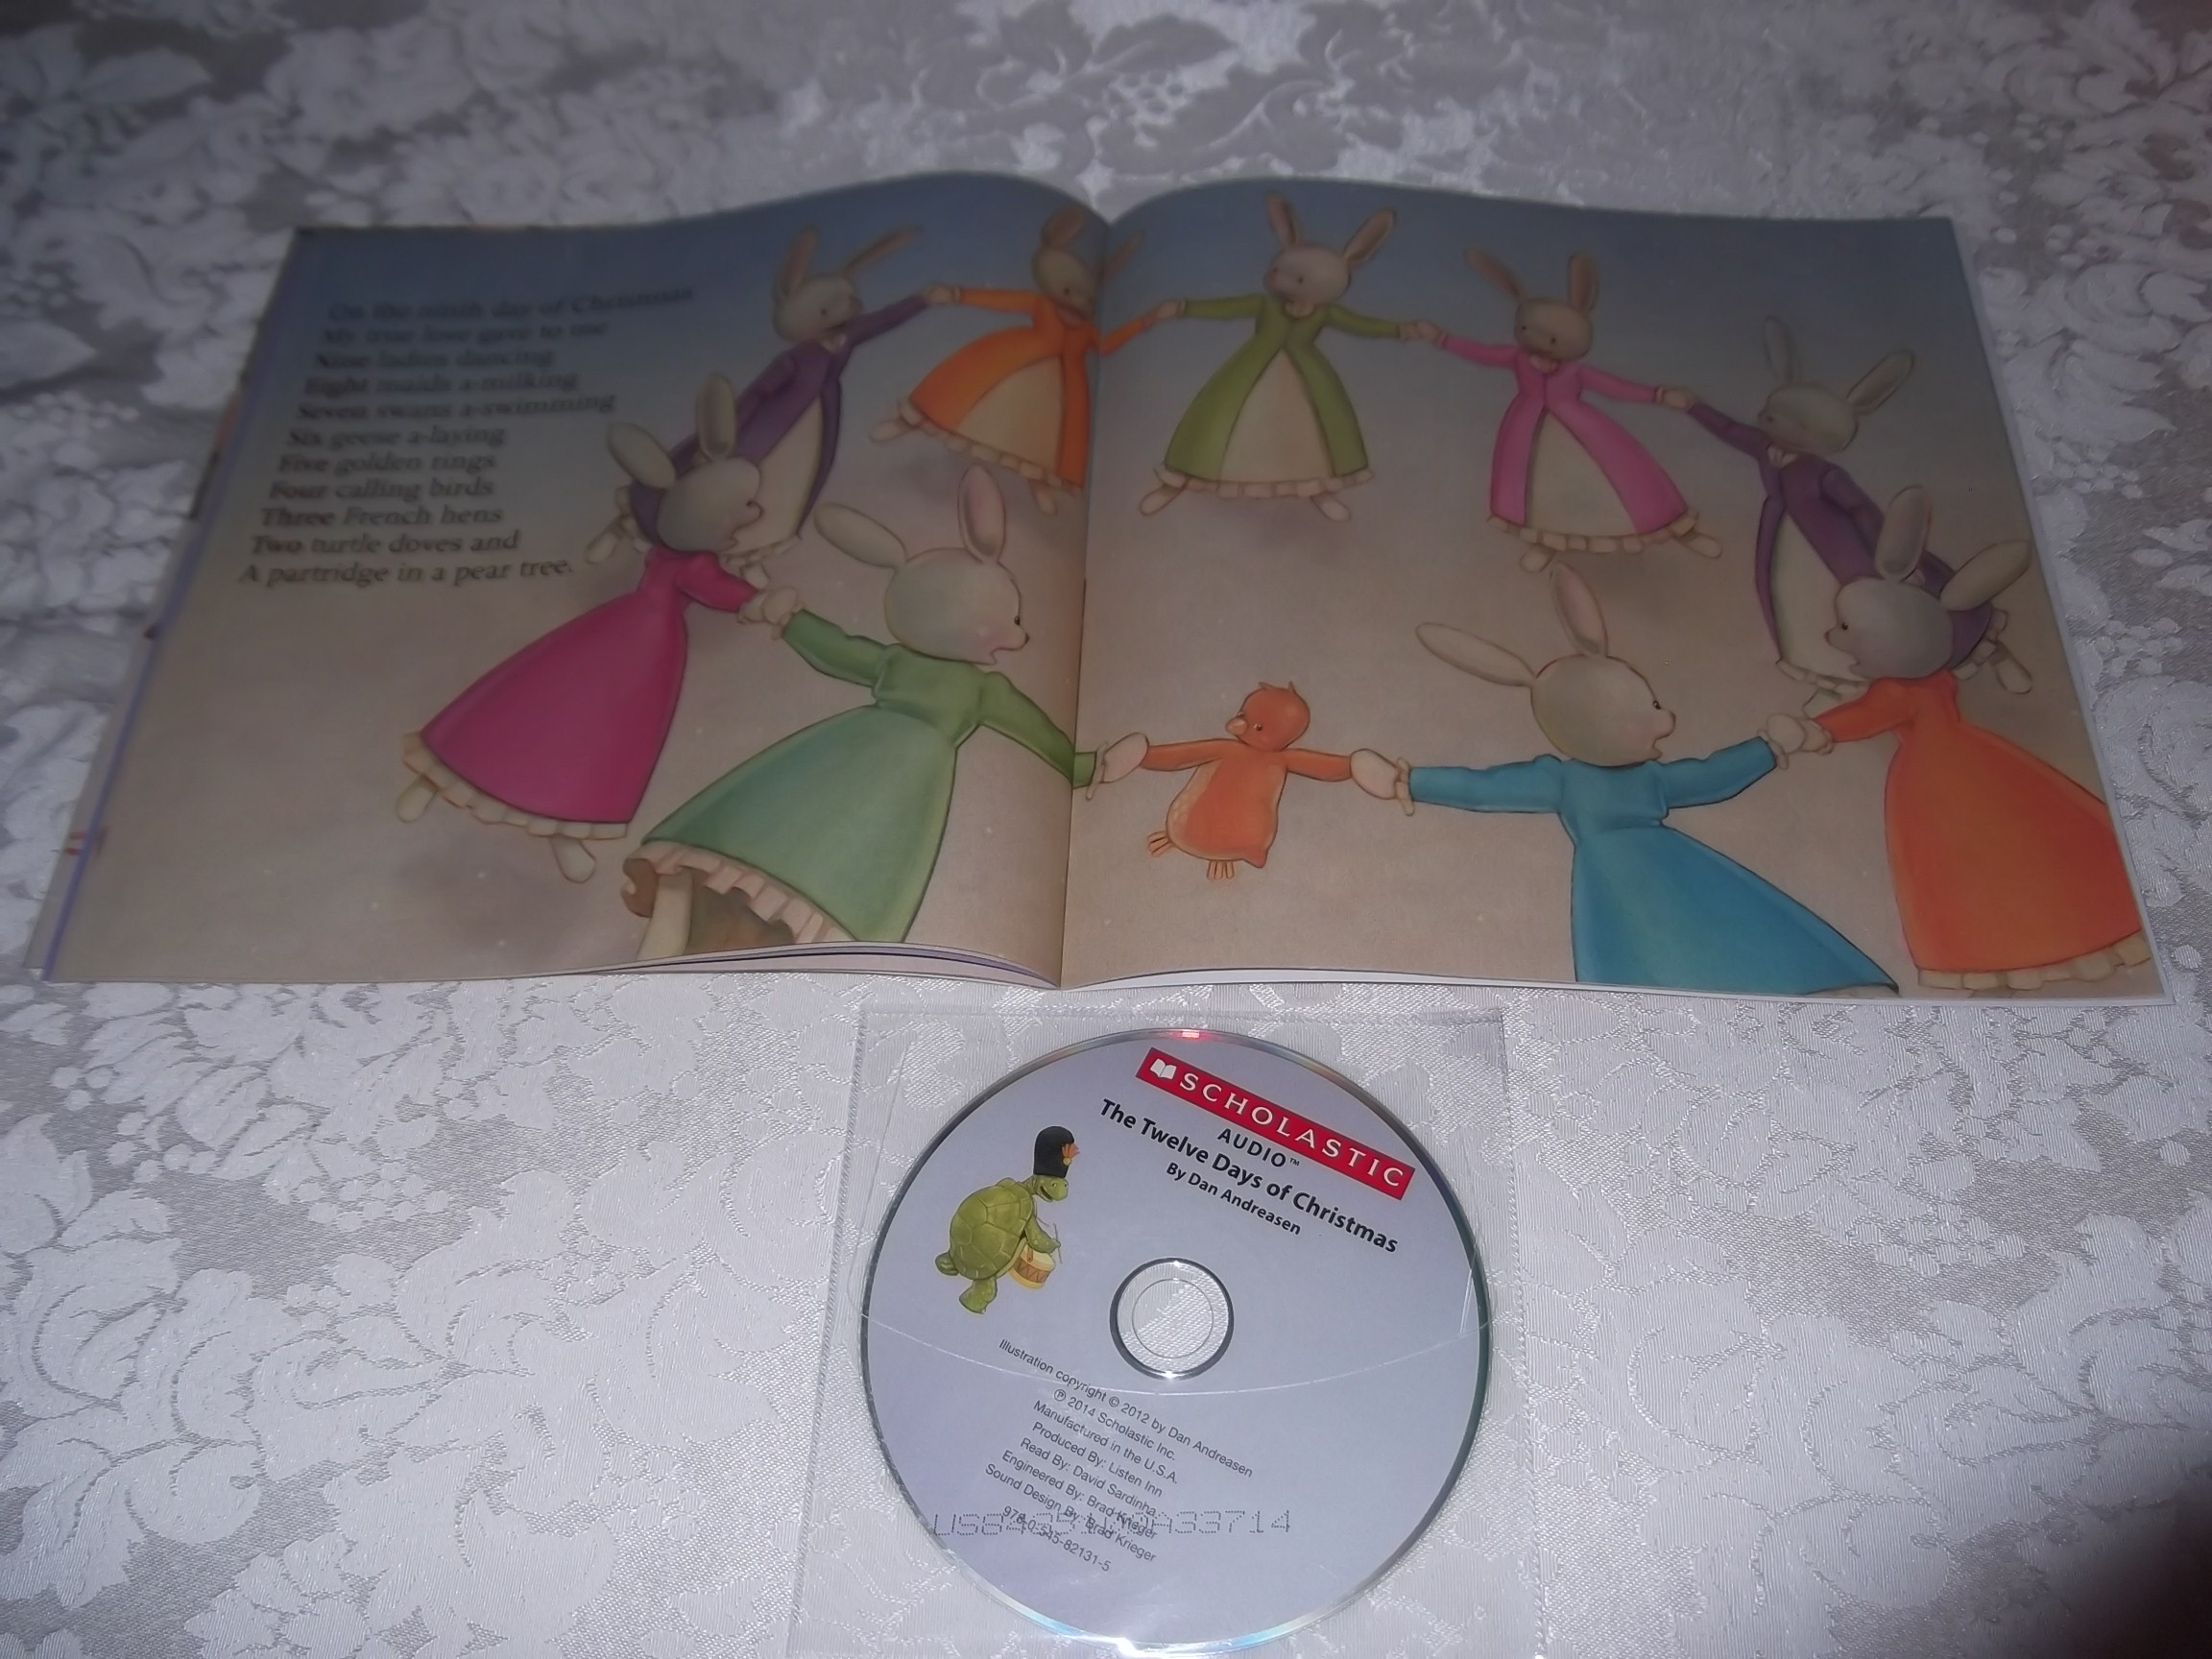 Image 4 of The Twelve Days of Christmas Dan Andreasen Audio CD and SC Brand New